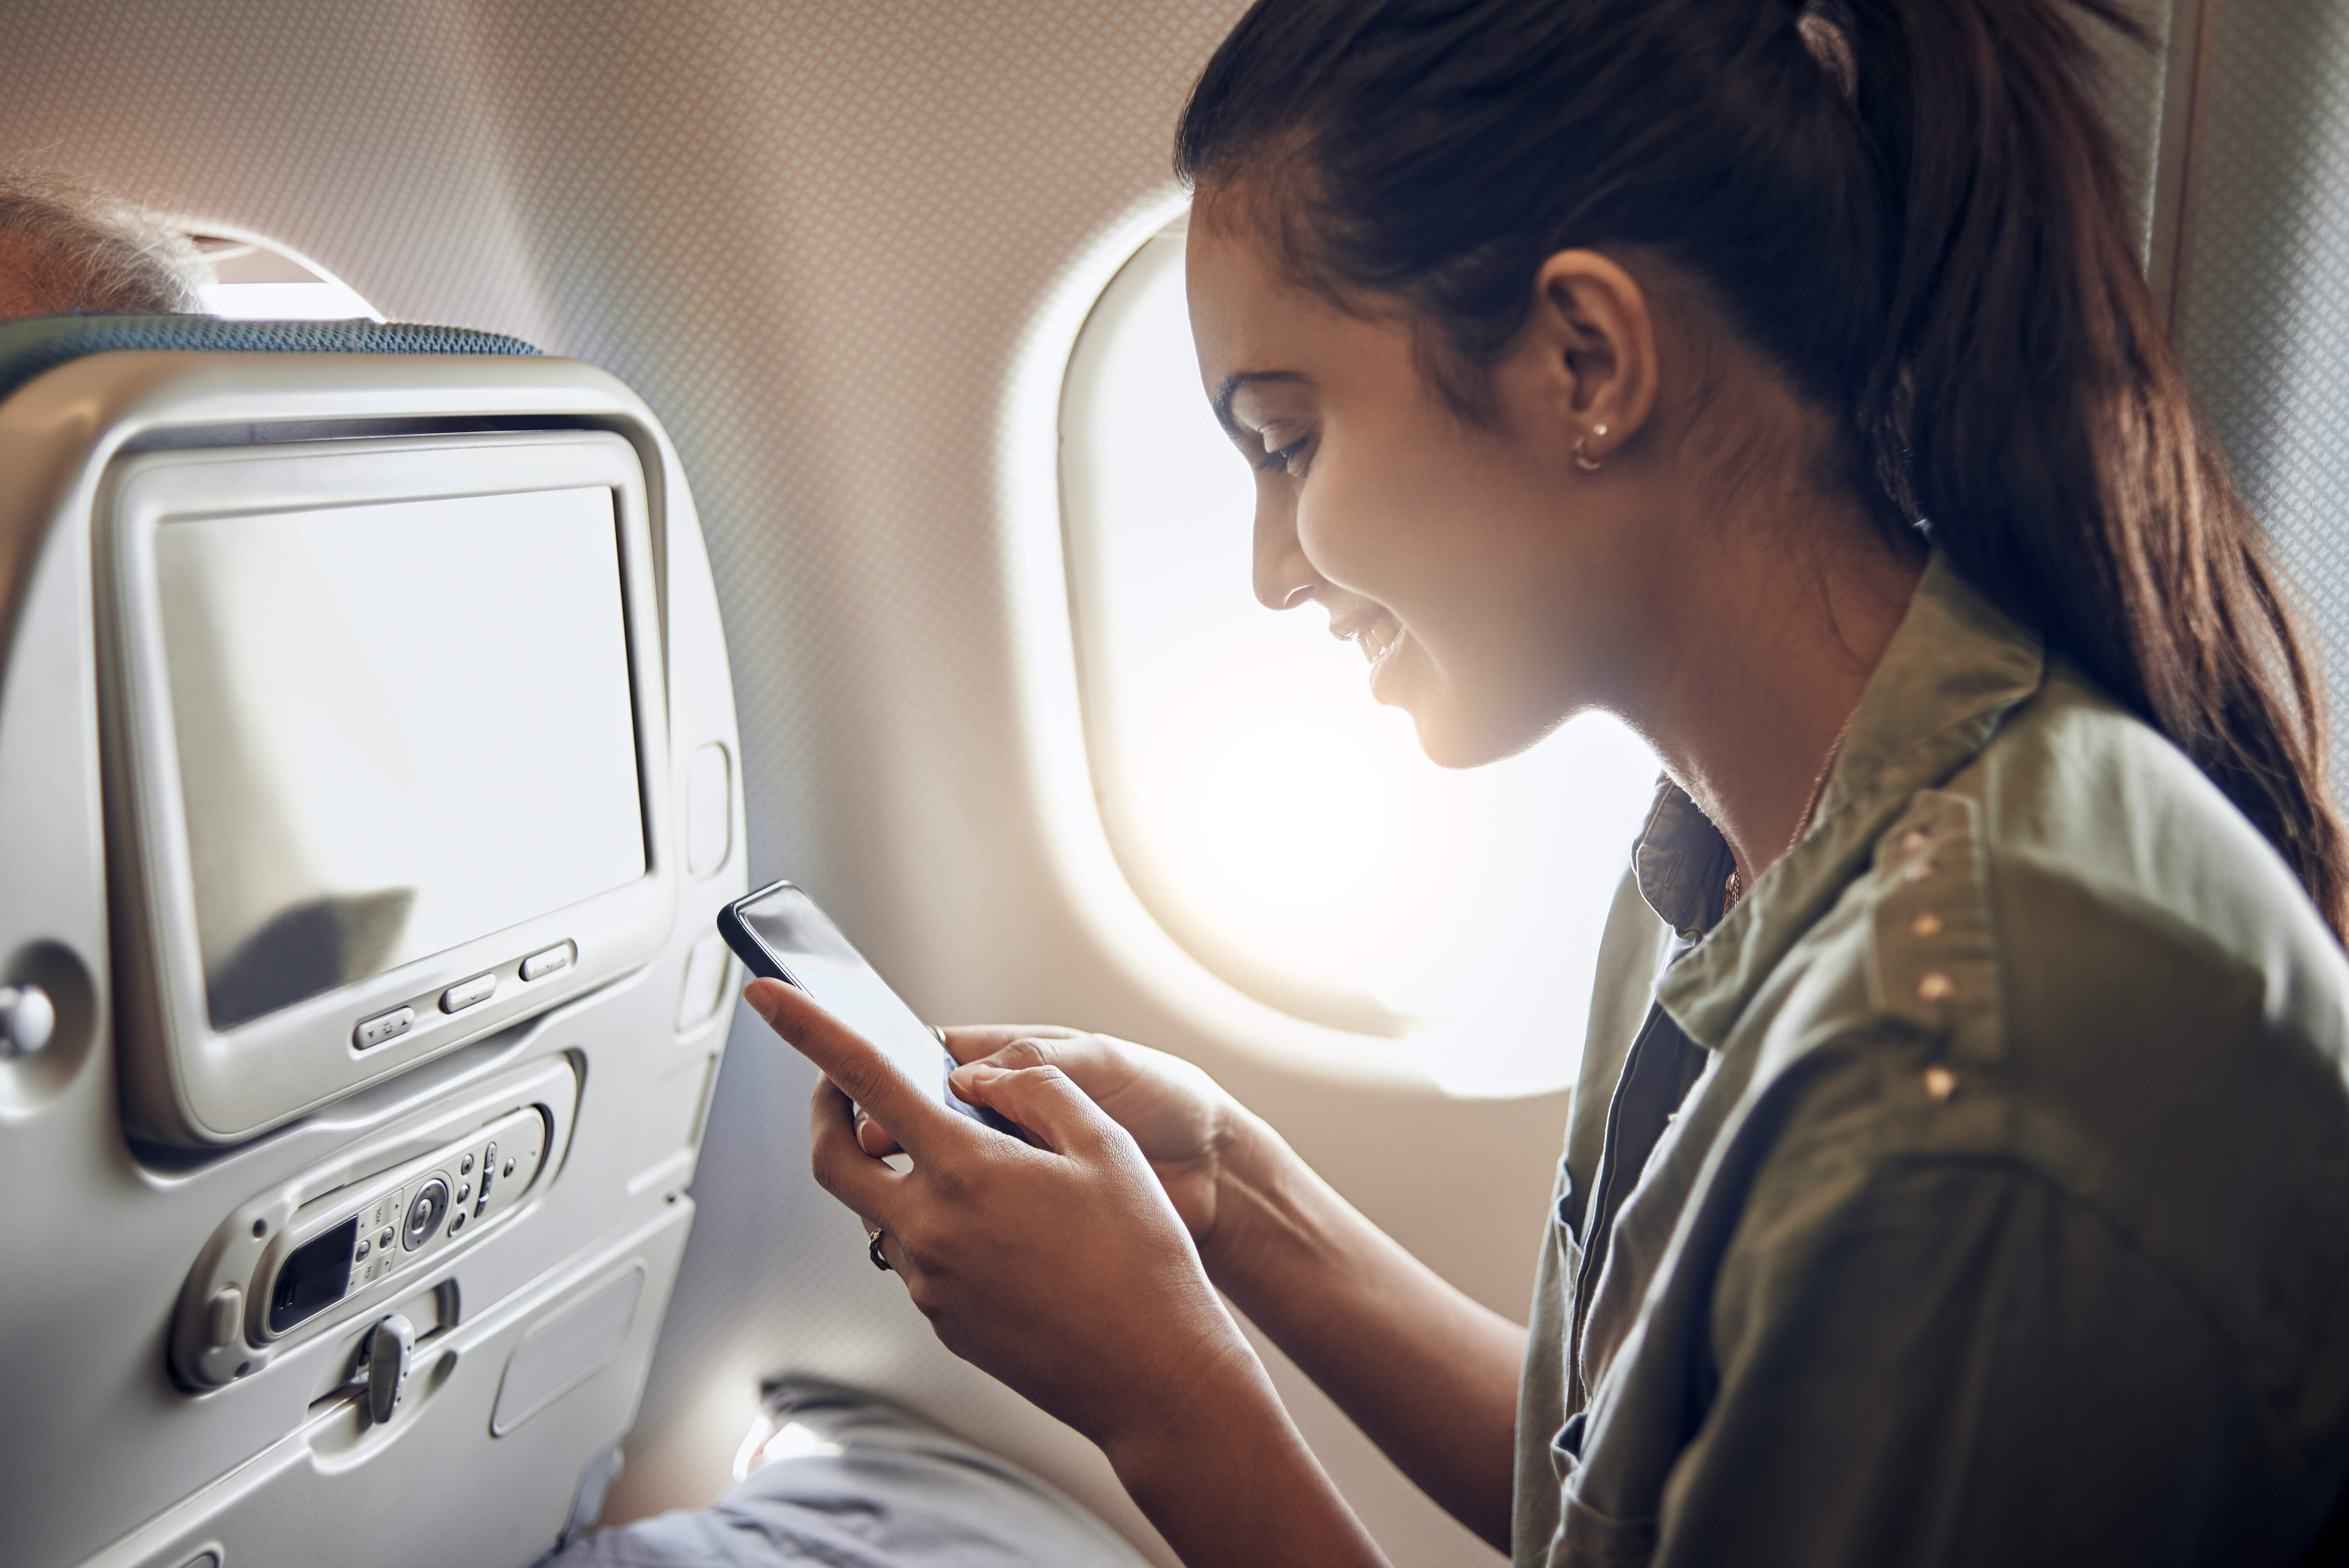 What happens if you don't put your phone on airplane mode on a flight?